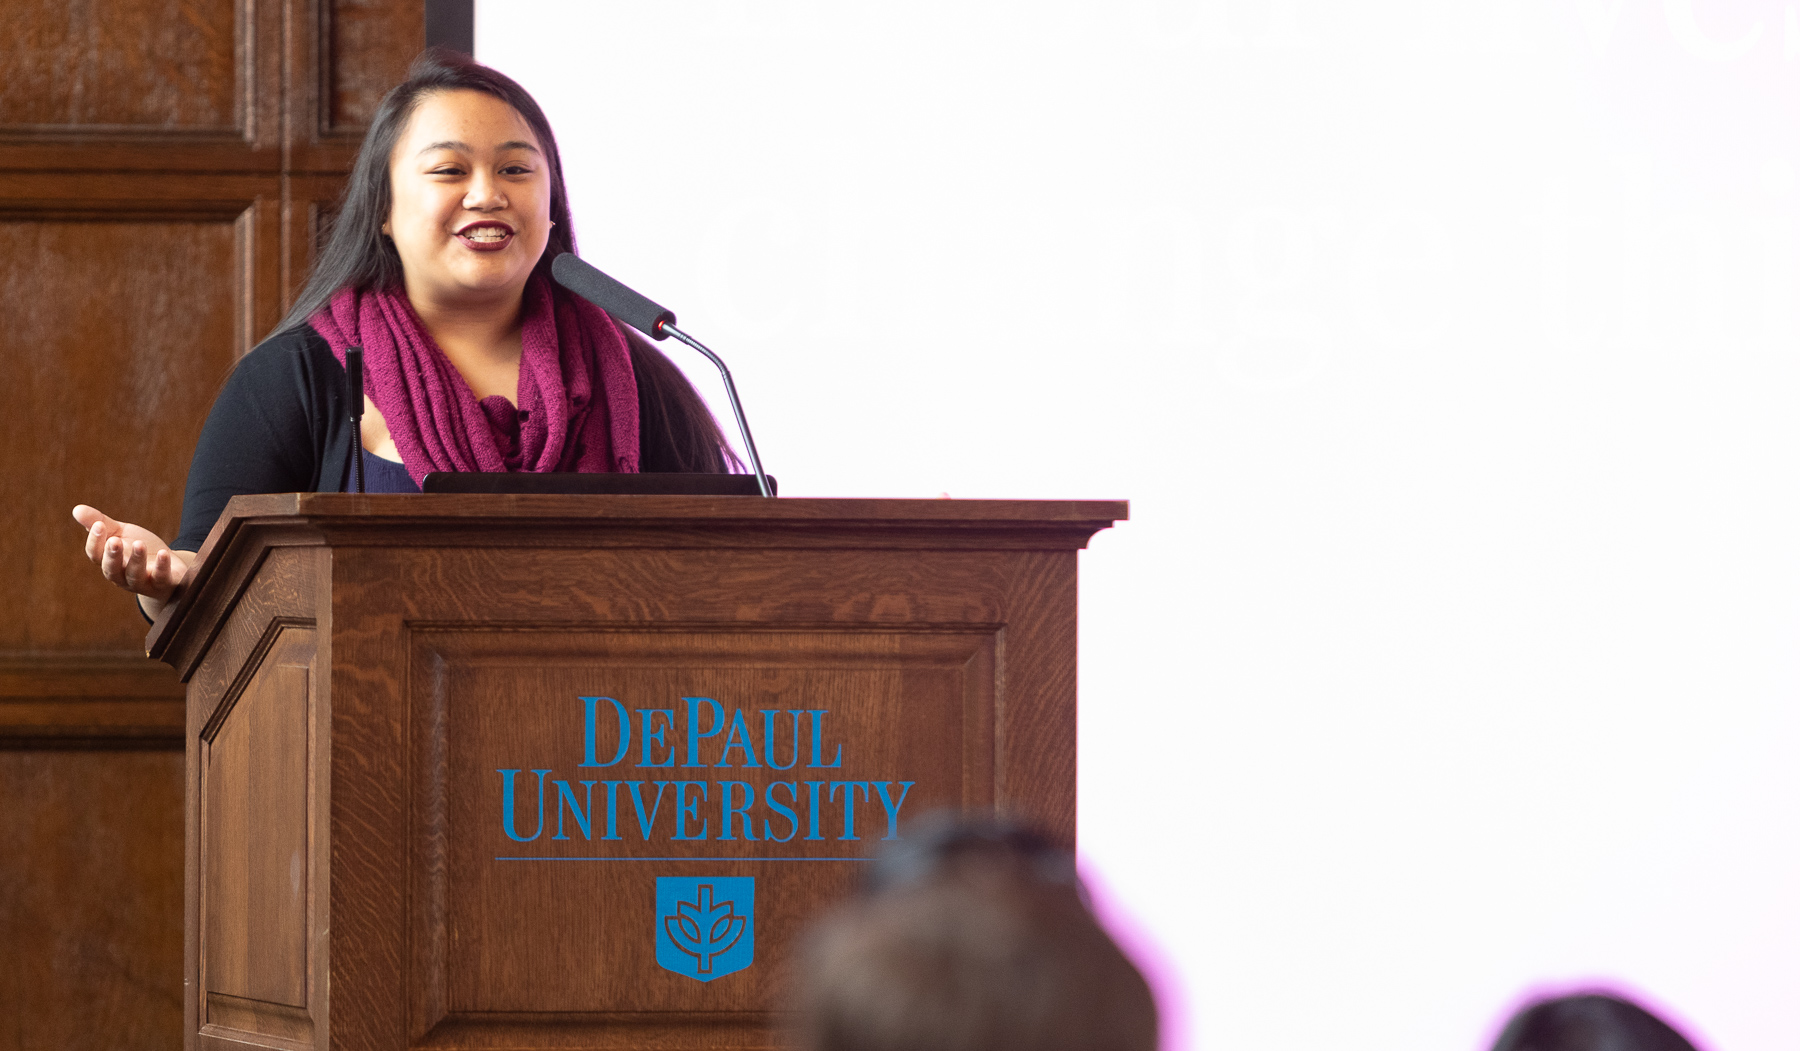 Alyssa Isberto, SGA senator for Community and Government Relations, also spoke during the event. (DePaul University/Jeff Carrion)